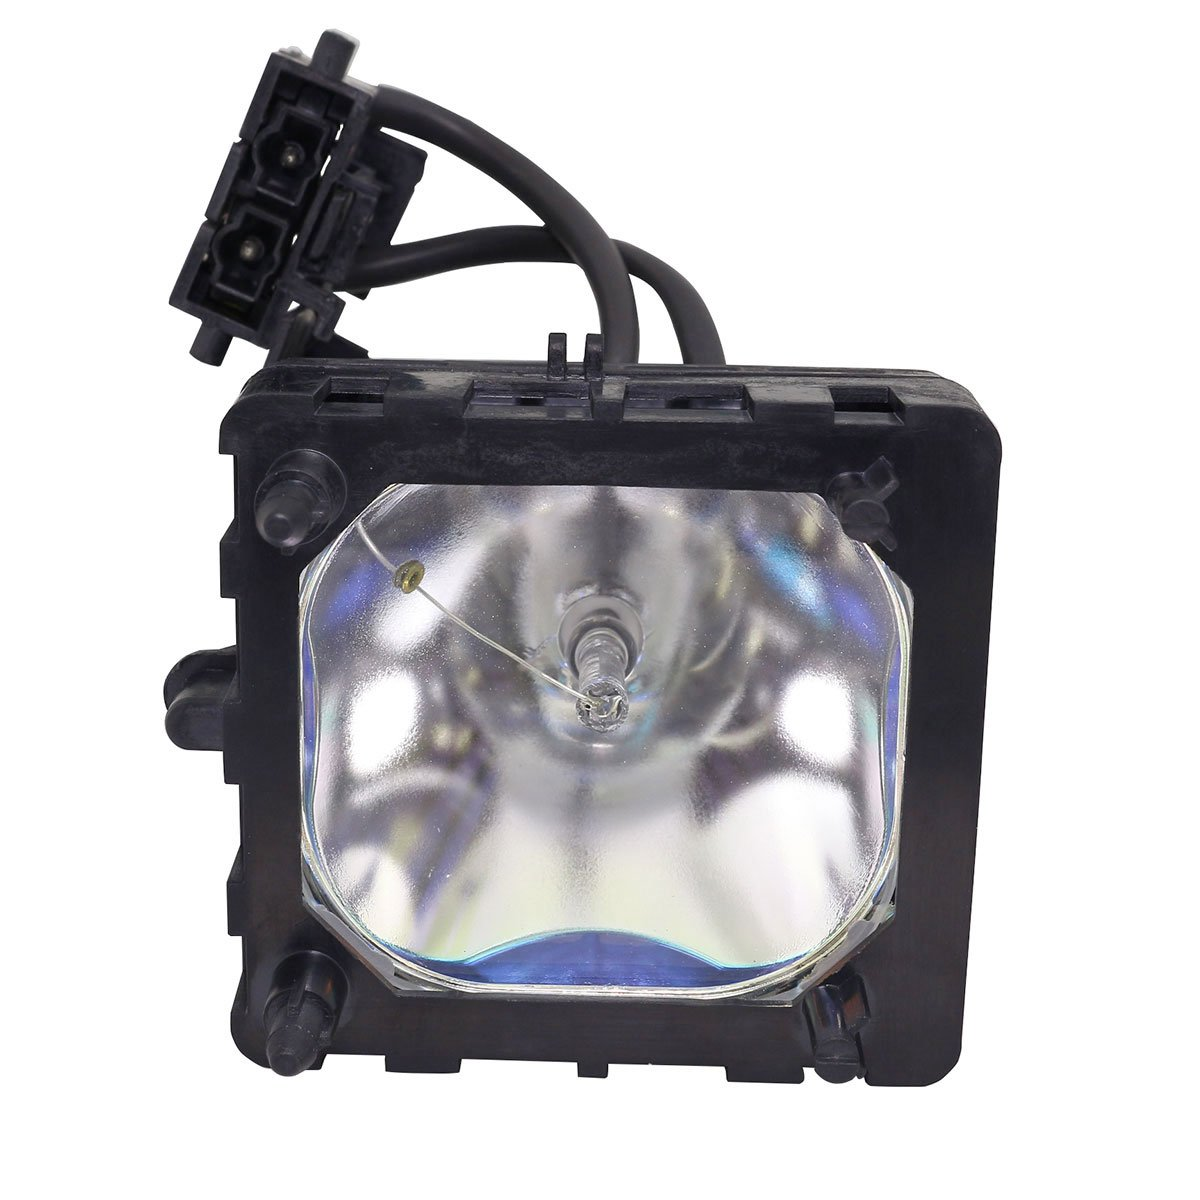 Aurabeam replacement TV lamp for Sony KDS 50A2000:KDS 50A2020:KDS 50A3000:KDS 55A2000:KDS 55A2020:KDS 55A3000:KDS 60A2000:KDS 60A2020:KDS 60A3000 Rear projection TV